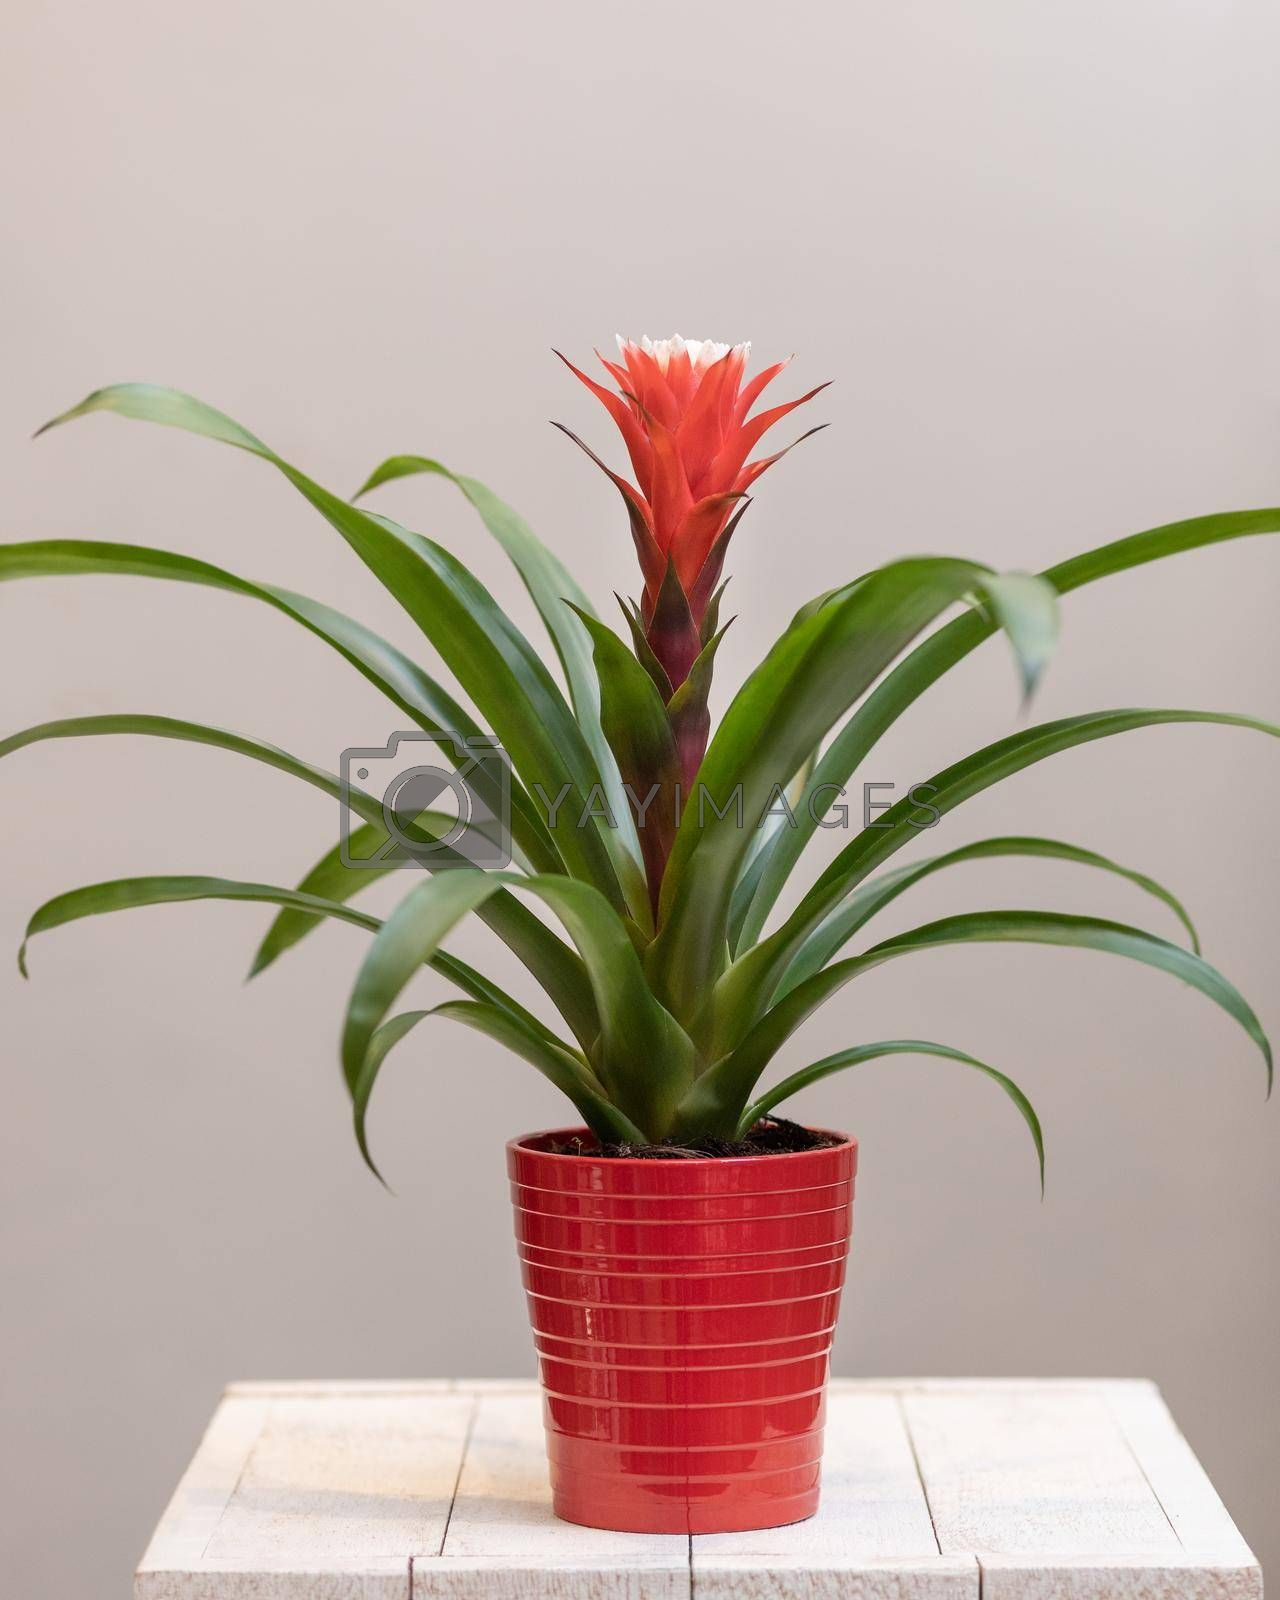 Bromeliaceae flower plant in the red pot